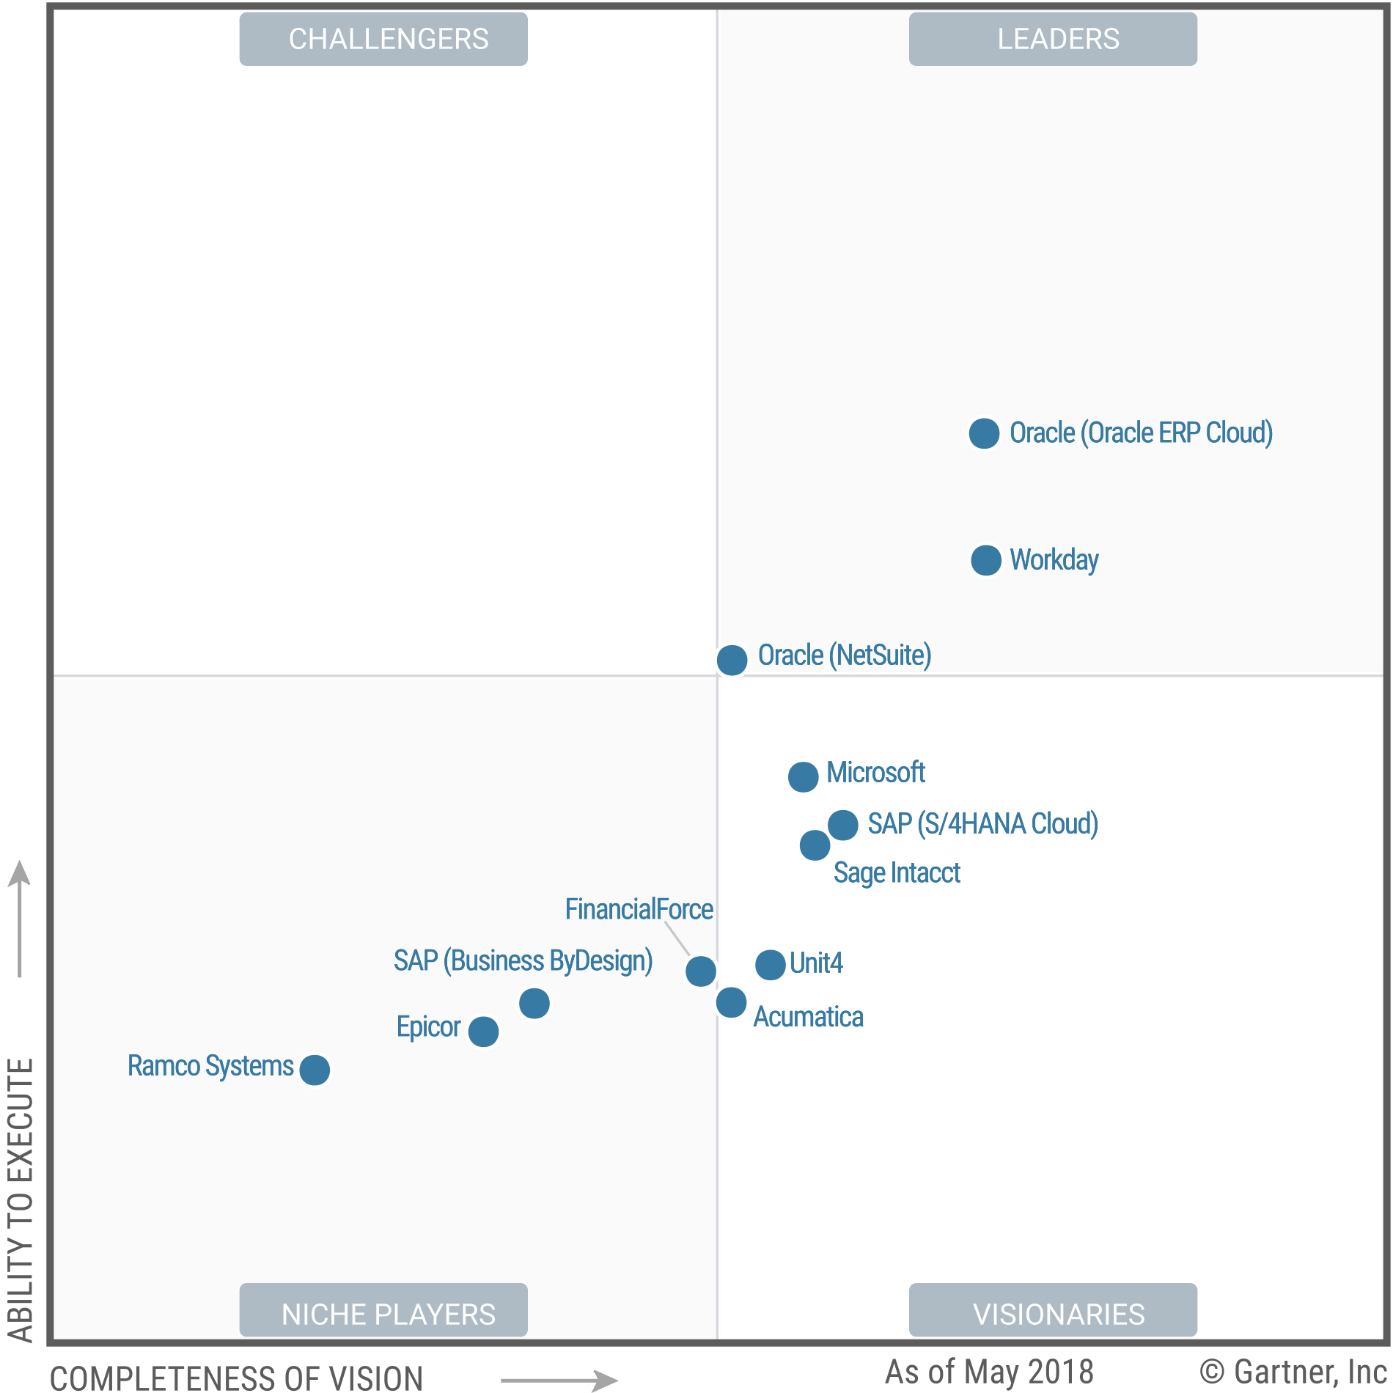 2018 Gartner Magic Quadrant Financial Management and ERP